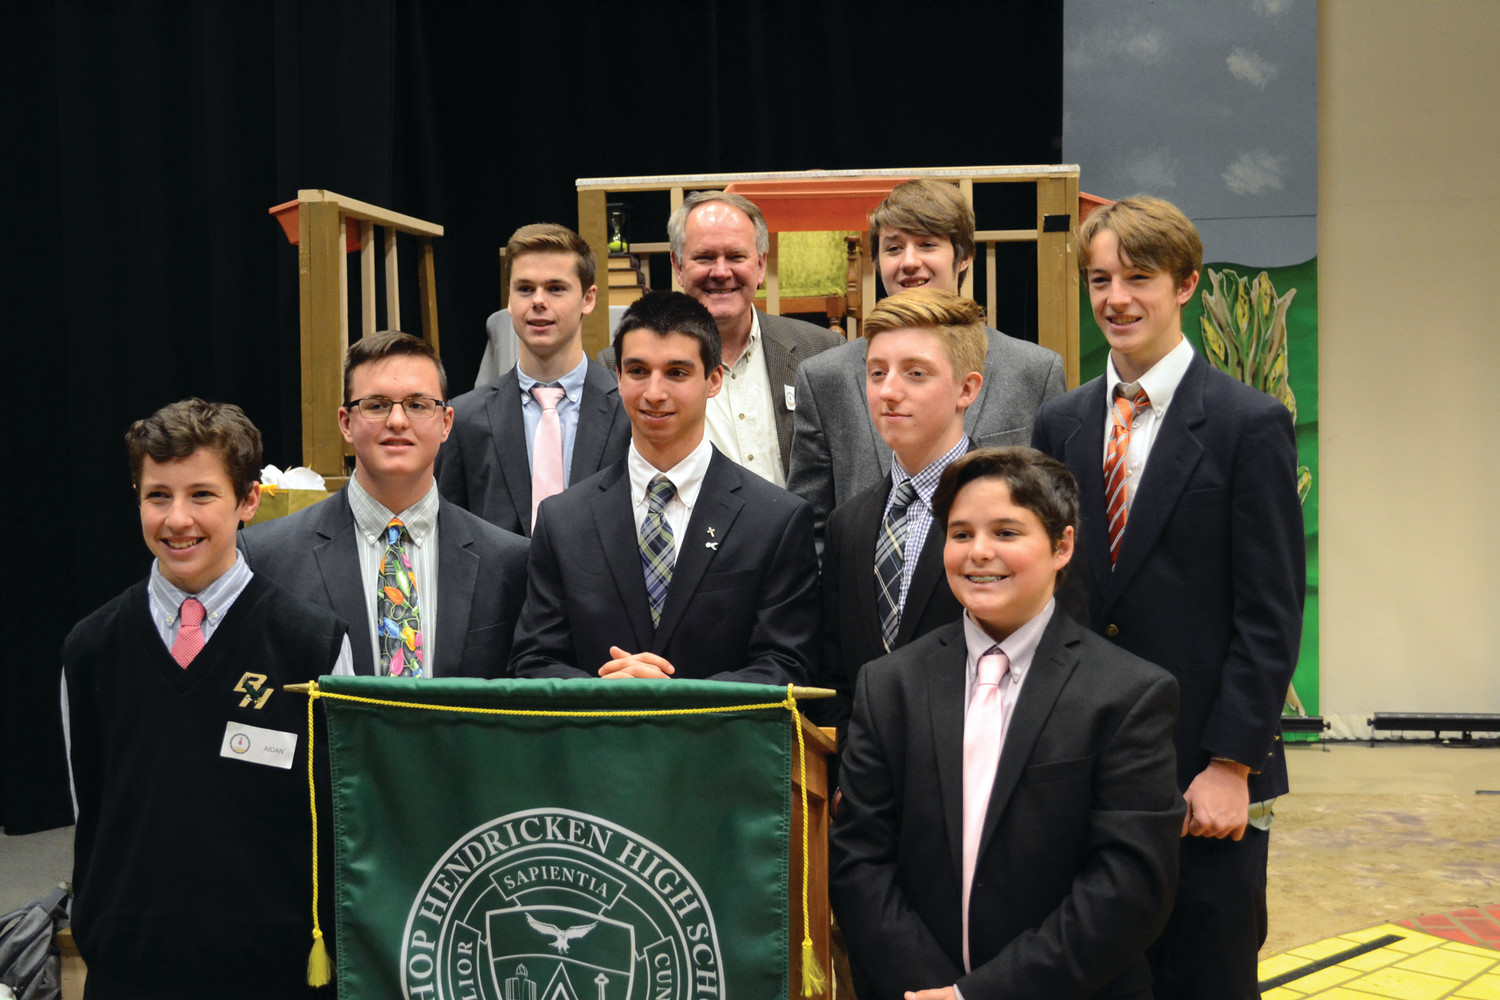 SPACE CADETS: The boys who participated in the Space Chat at Hendricken pose for a photo with Mike Cullen, who facilitated the event.